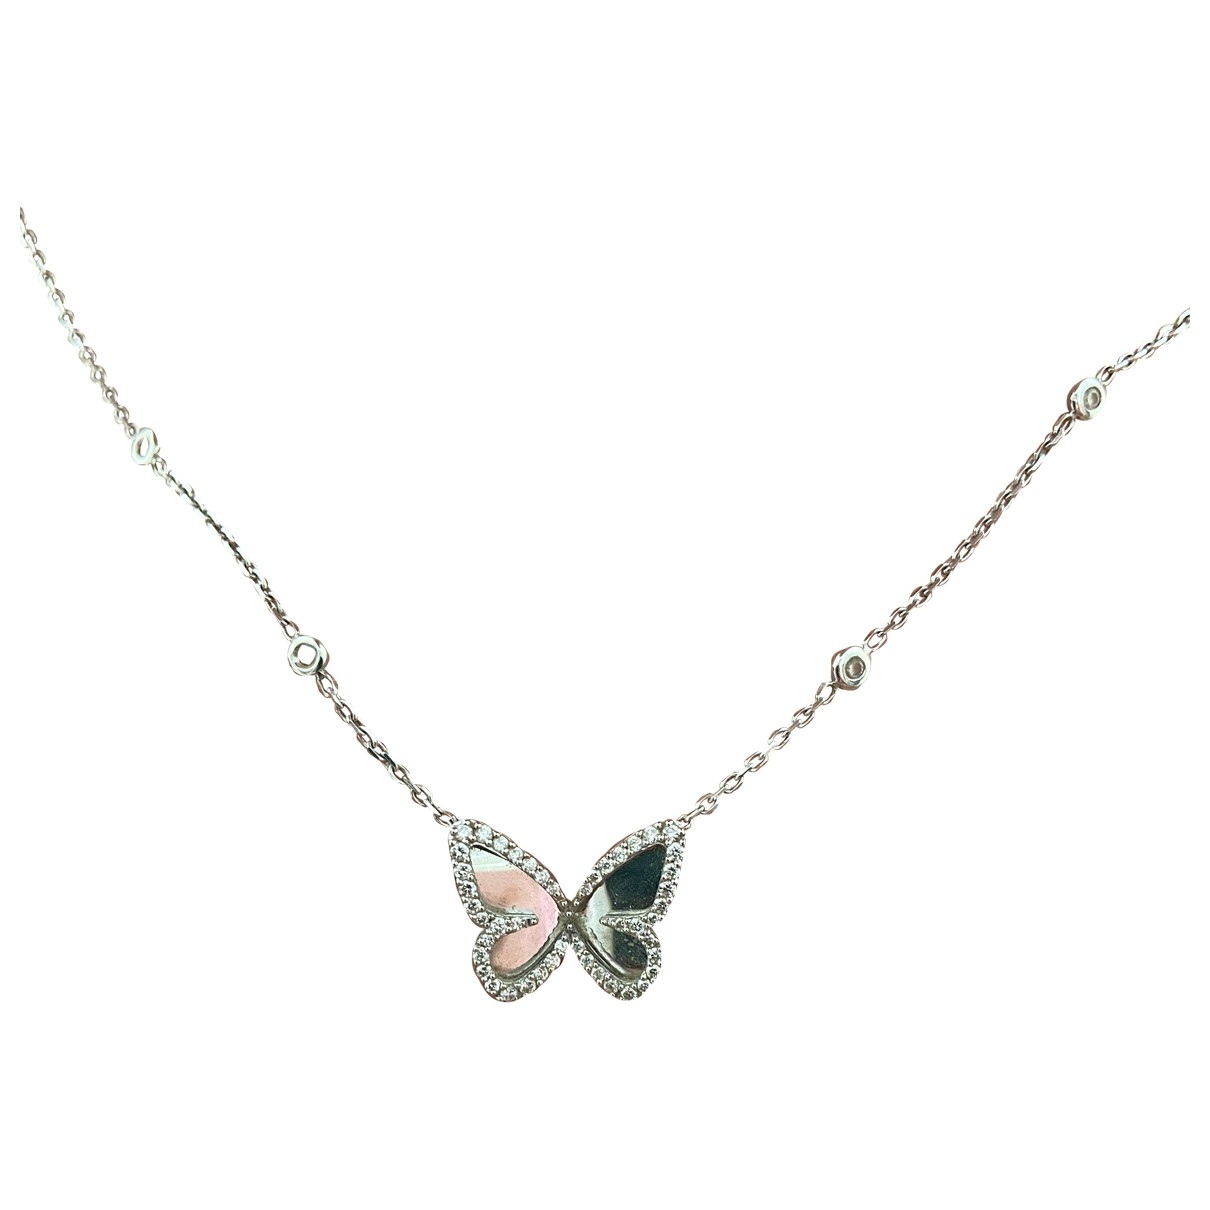 Messika - Collier Butterfly pour femme en or blanc - argente